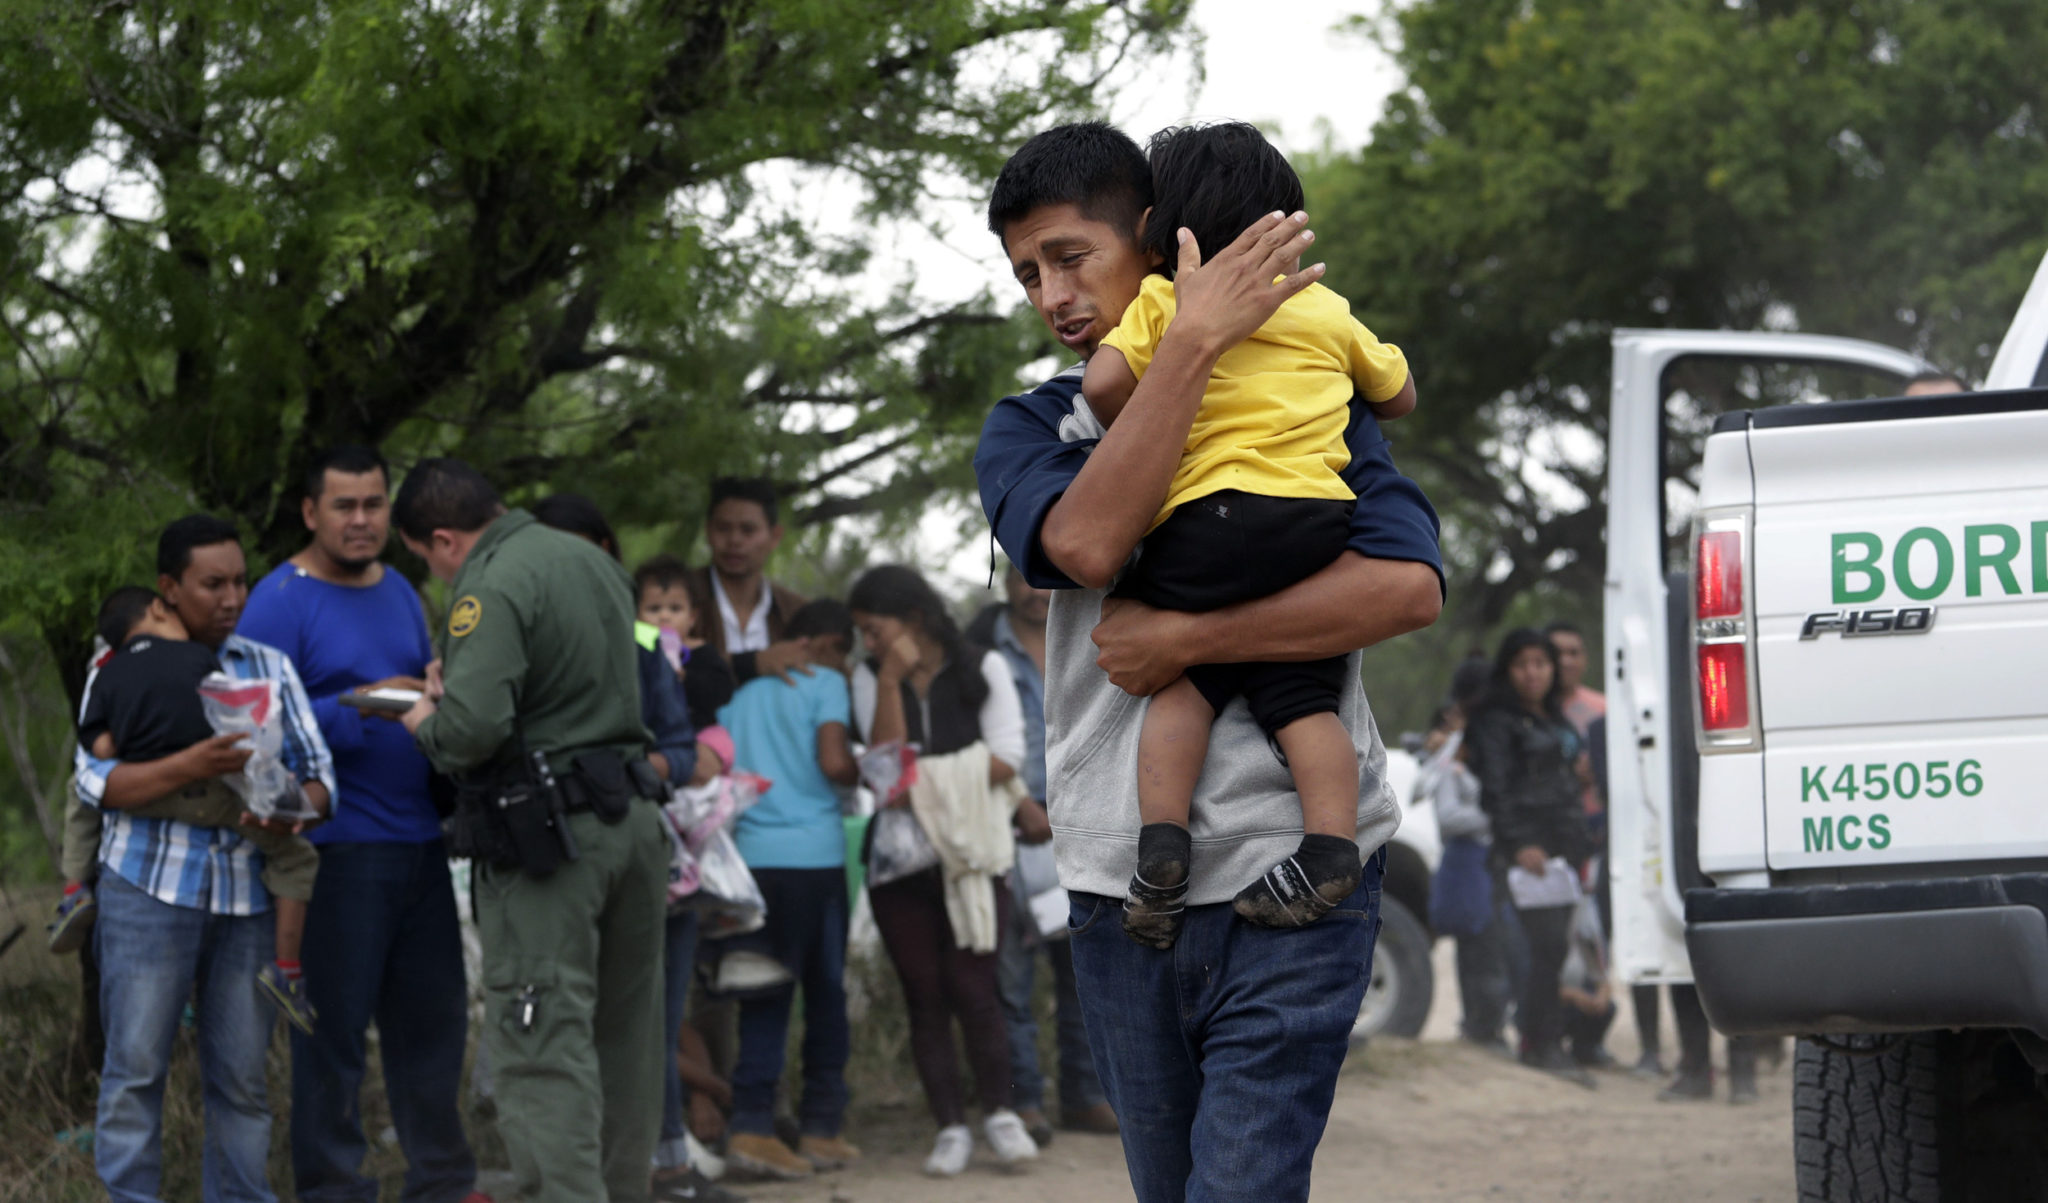 A Year Later, Trump's 'Zero Tolerance' Border Policy Frays